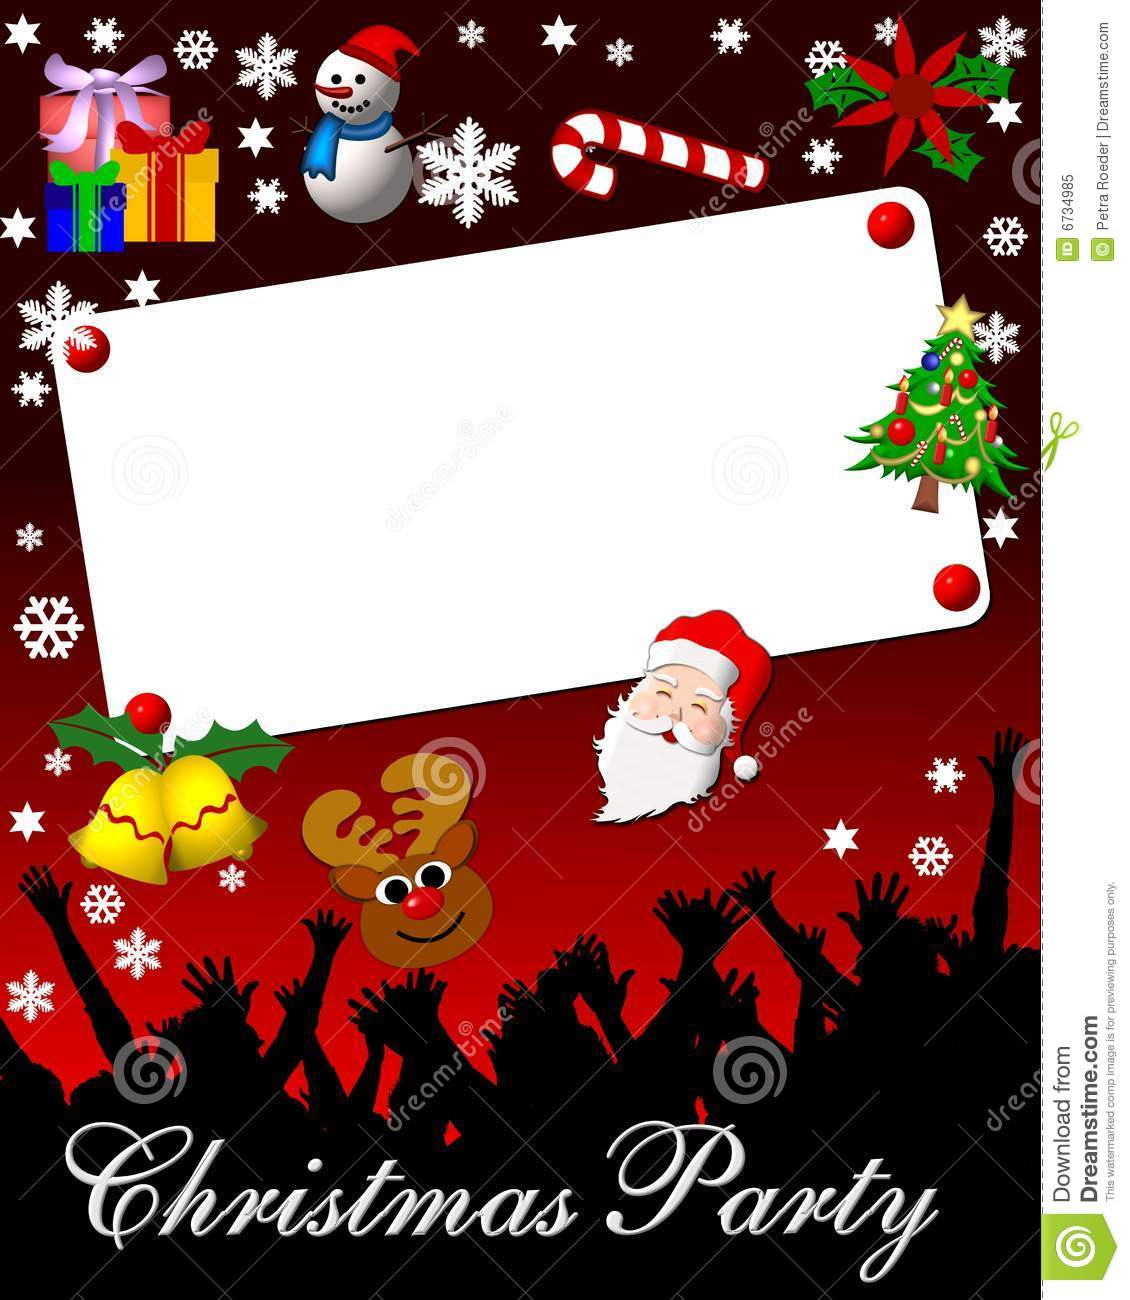 Xmas Party Invite Template as luxury invitations template